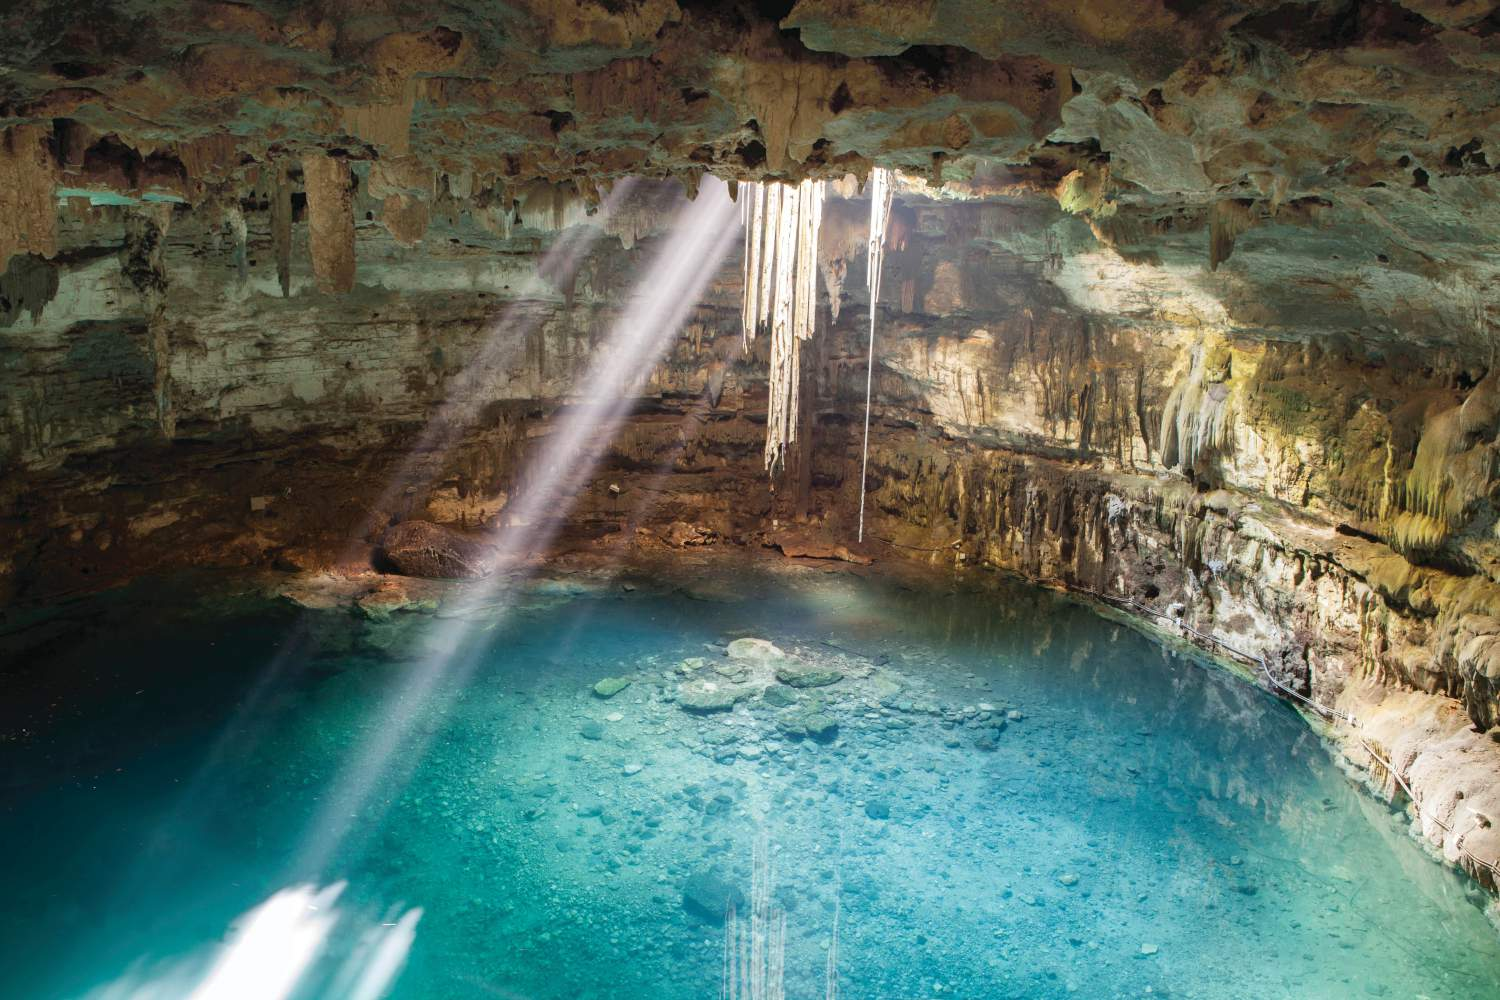 Blue Cenote in Quintana Roo